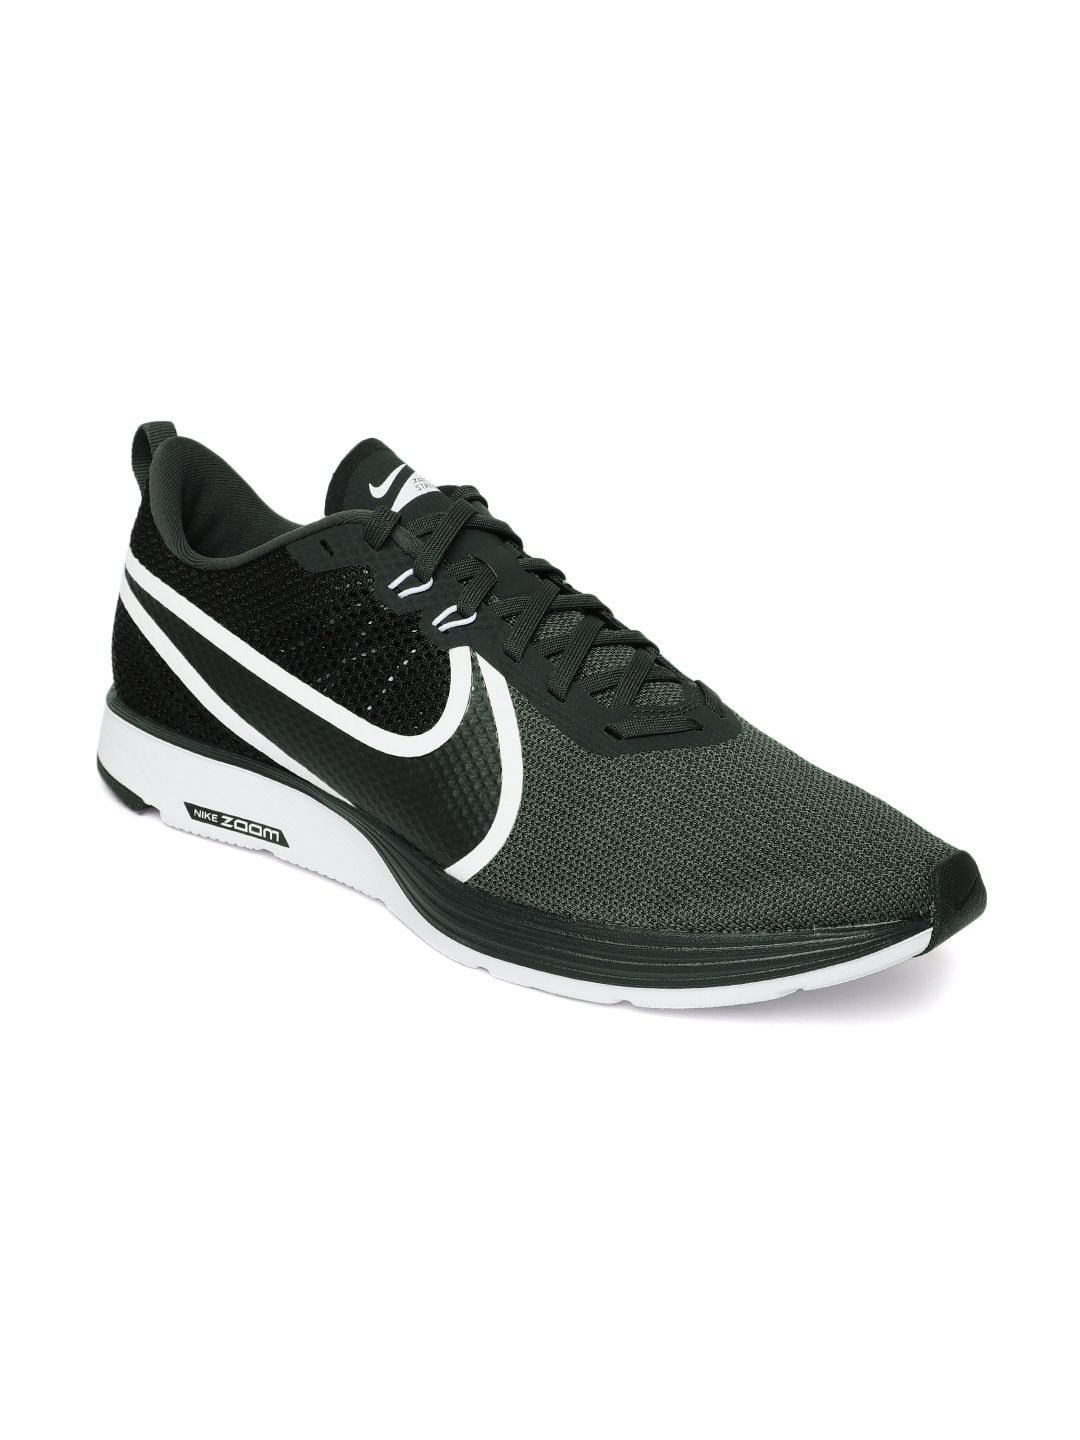 937f0193020930 Black Sports Shoes - Buy Black Sports Shoes Online in India